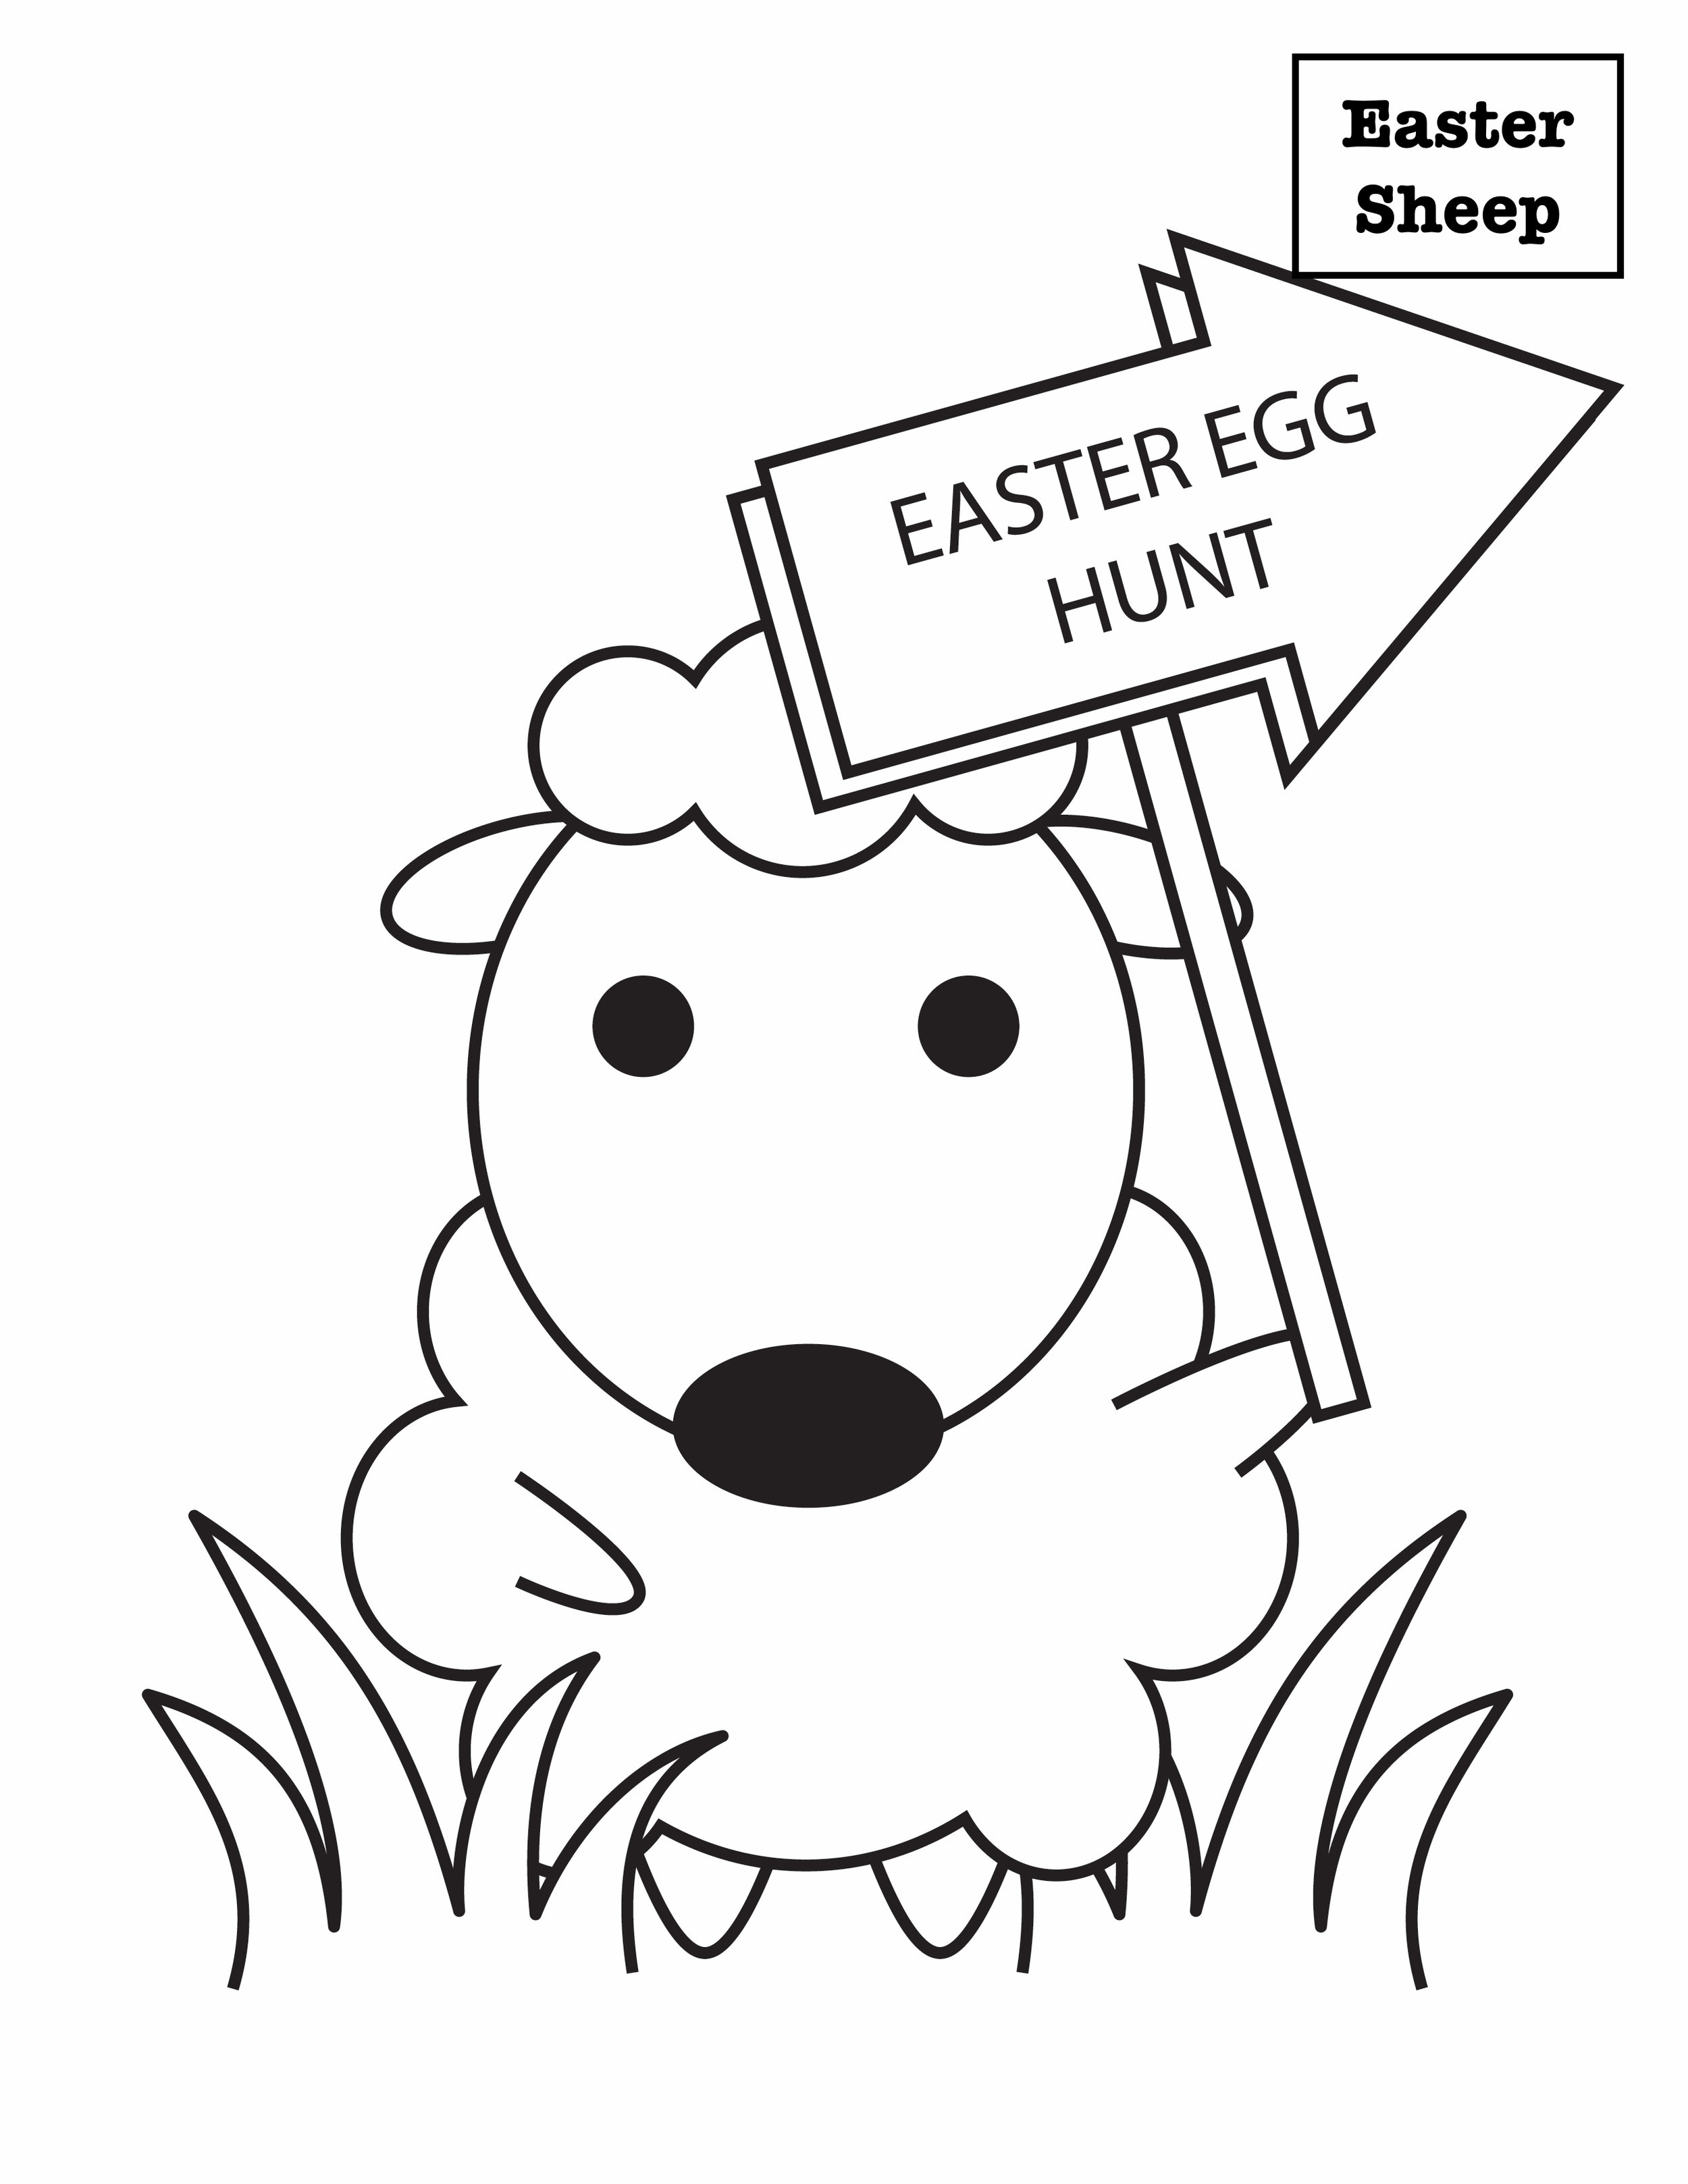 Easter Sheep with Tag.jpeg